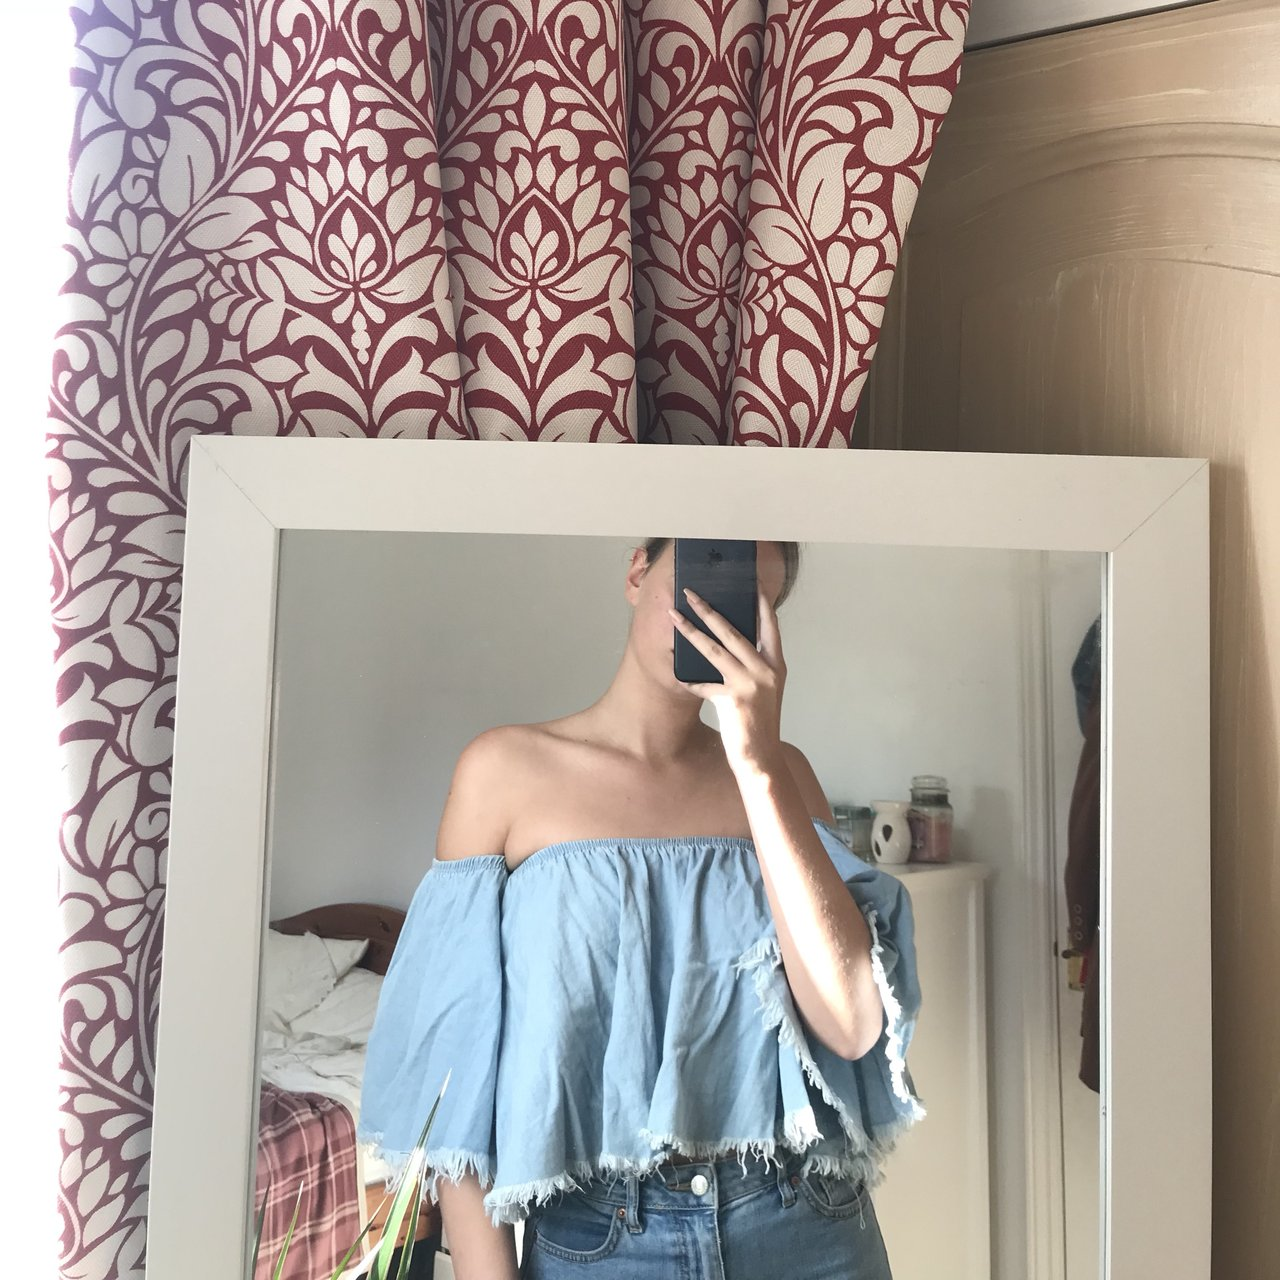 77e3c958a0a Floaty fashion nova denim look bardot - Depop